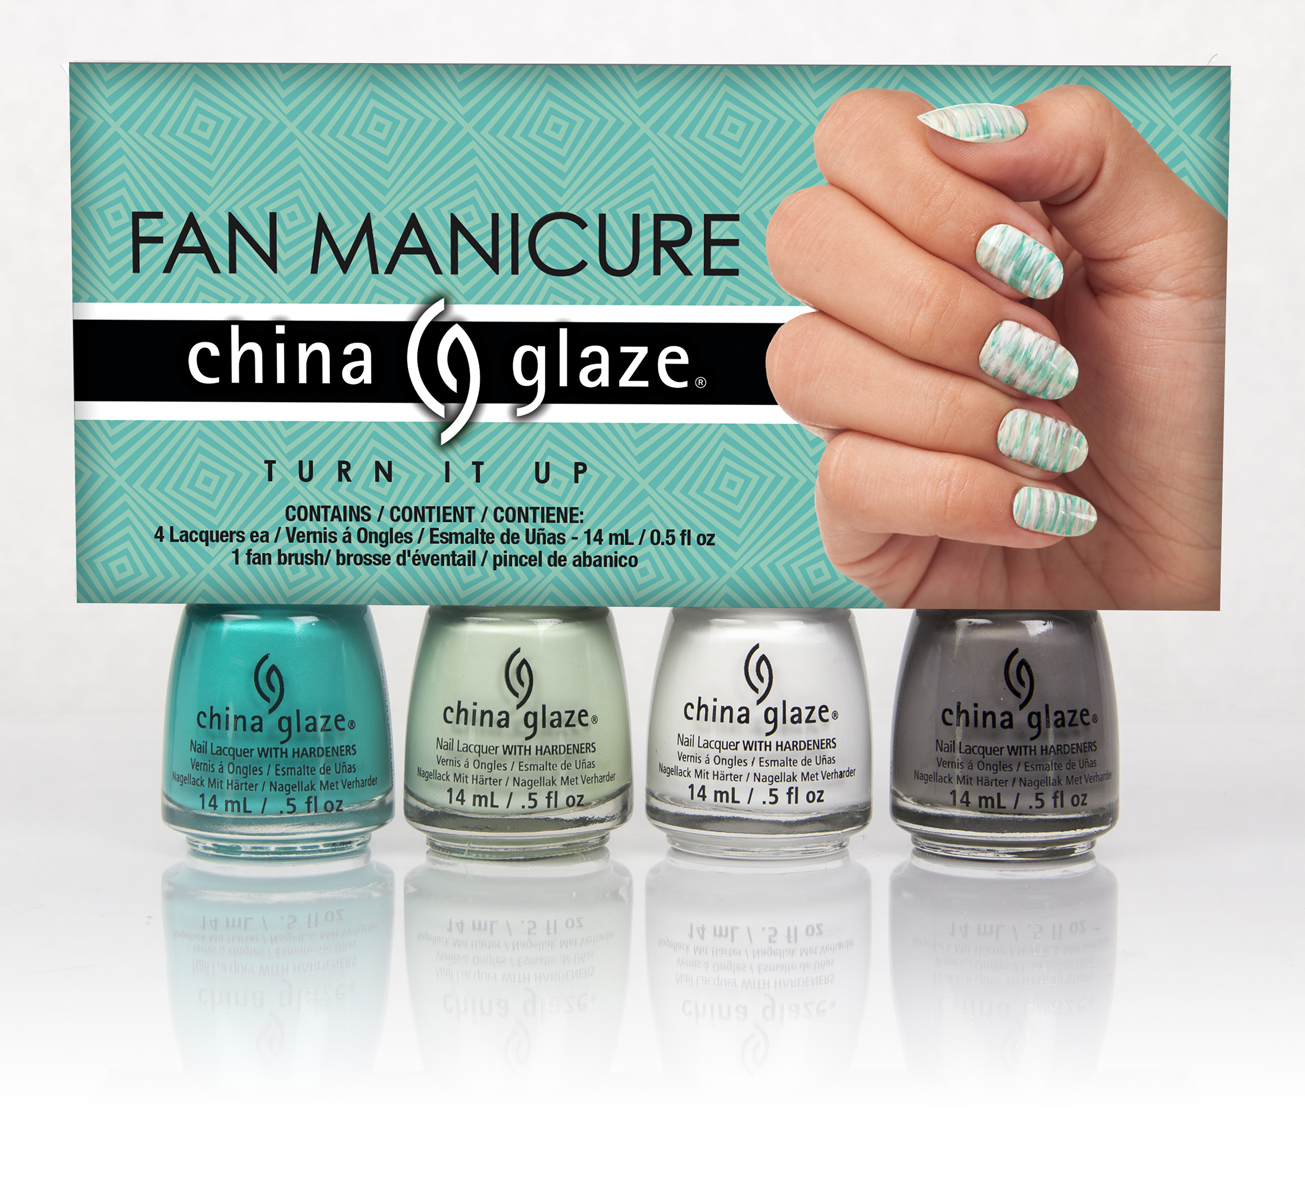 China Glaze Introduces Fan Manicure Kits